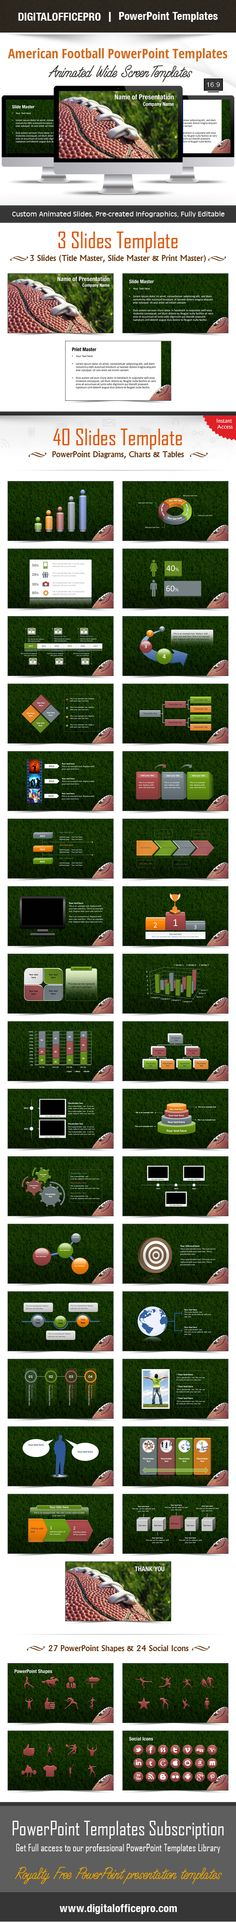 American Football House Music Pinterest American football - football powerpoint template